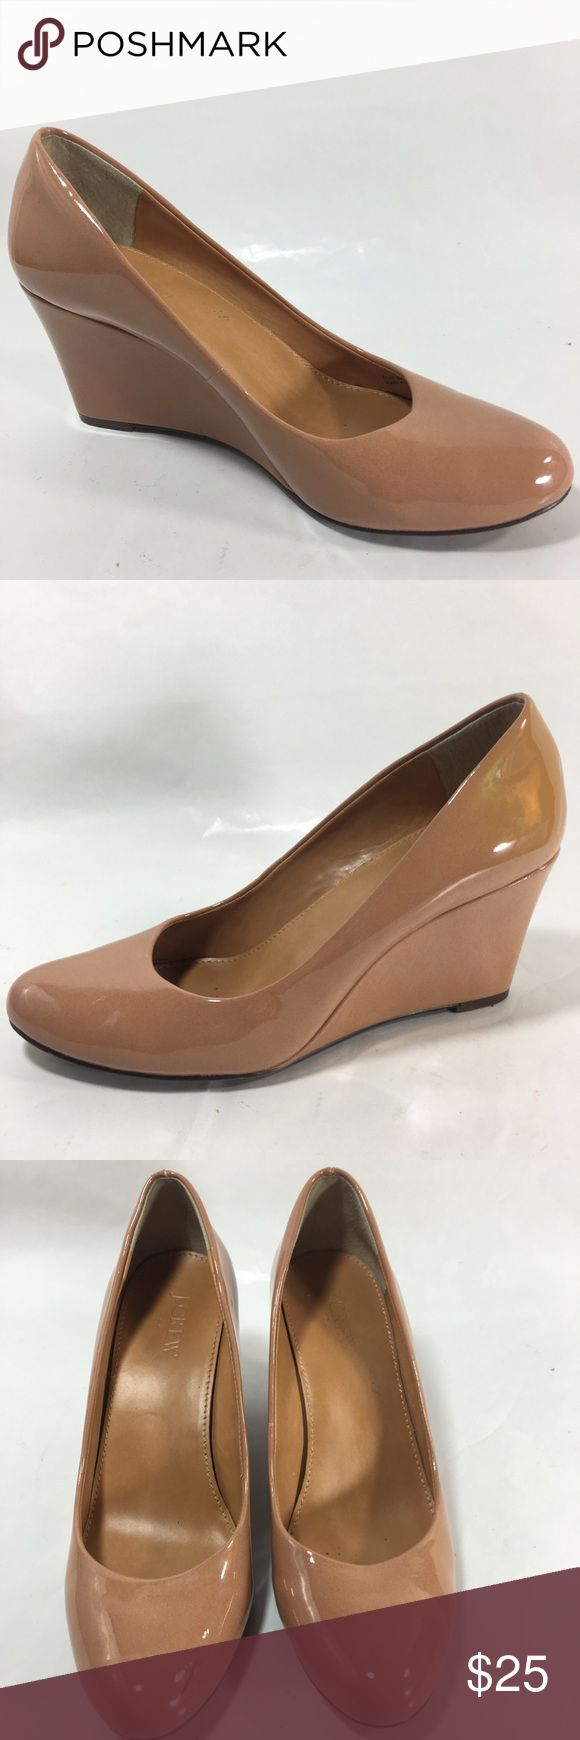 "J. CREW Nude Patent Leather Round Toe Wedge Pump J. CREW Nude Patent Leather Round Toe Wedge Pumps-    Women's Size: 7 Color: Nude Materials: Patent Leather  Style:  Wedge pumps, round toe, slip on Heel: 3"" Heel, no platform Good pre-owned condition  - other then slightly scuffs on both shoes and on tip of the right side and color faded outside heels areas  see the last two pics.  Please view photos for details and these are part of the description and contact for additional questions…"